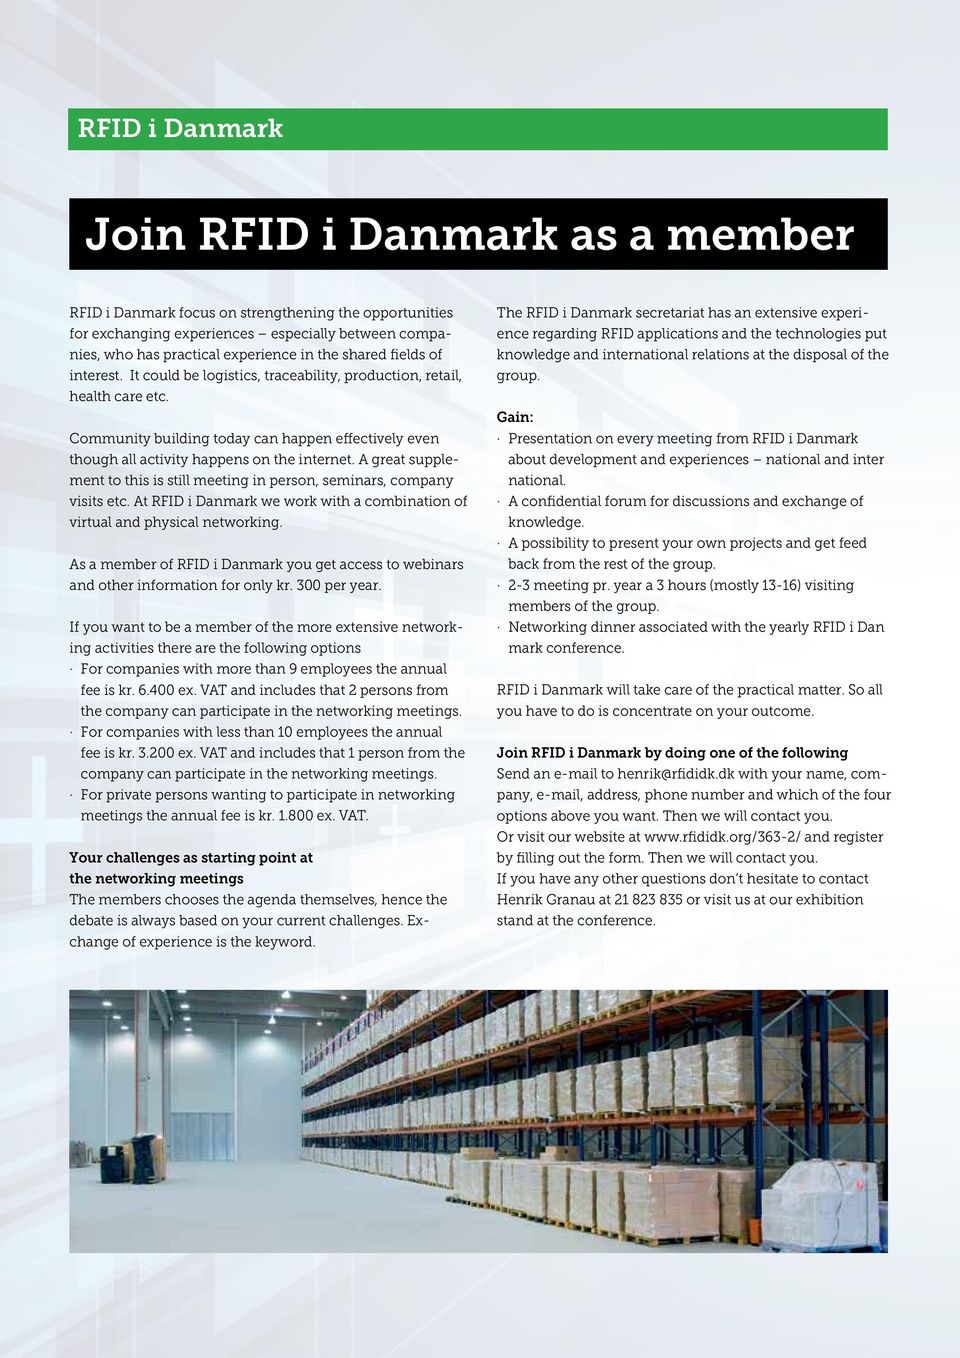 A great supplement to this is still meeting in person, seminars, company visits etc. At RFID i Danmark we work with a combination of virtual and physical networking.